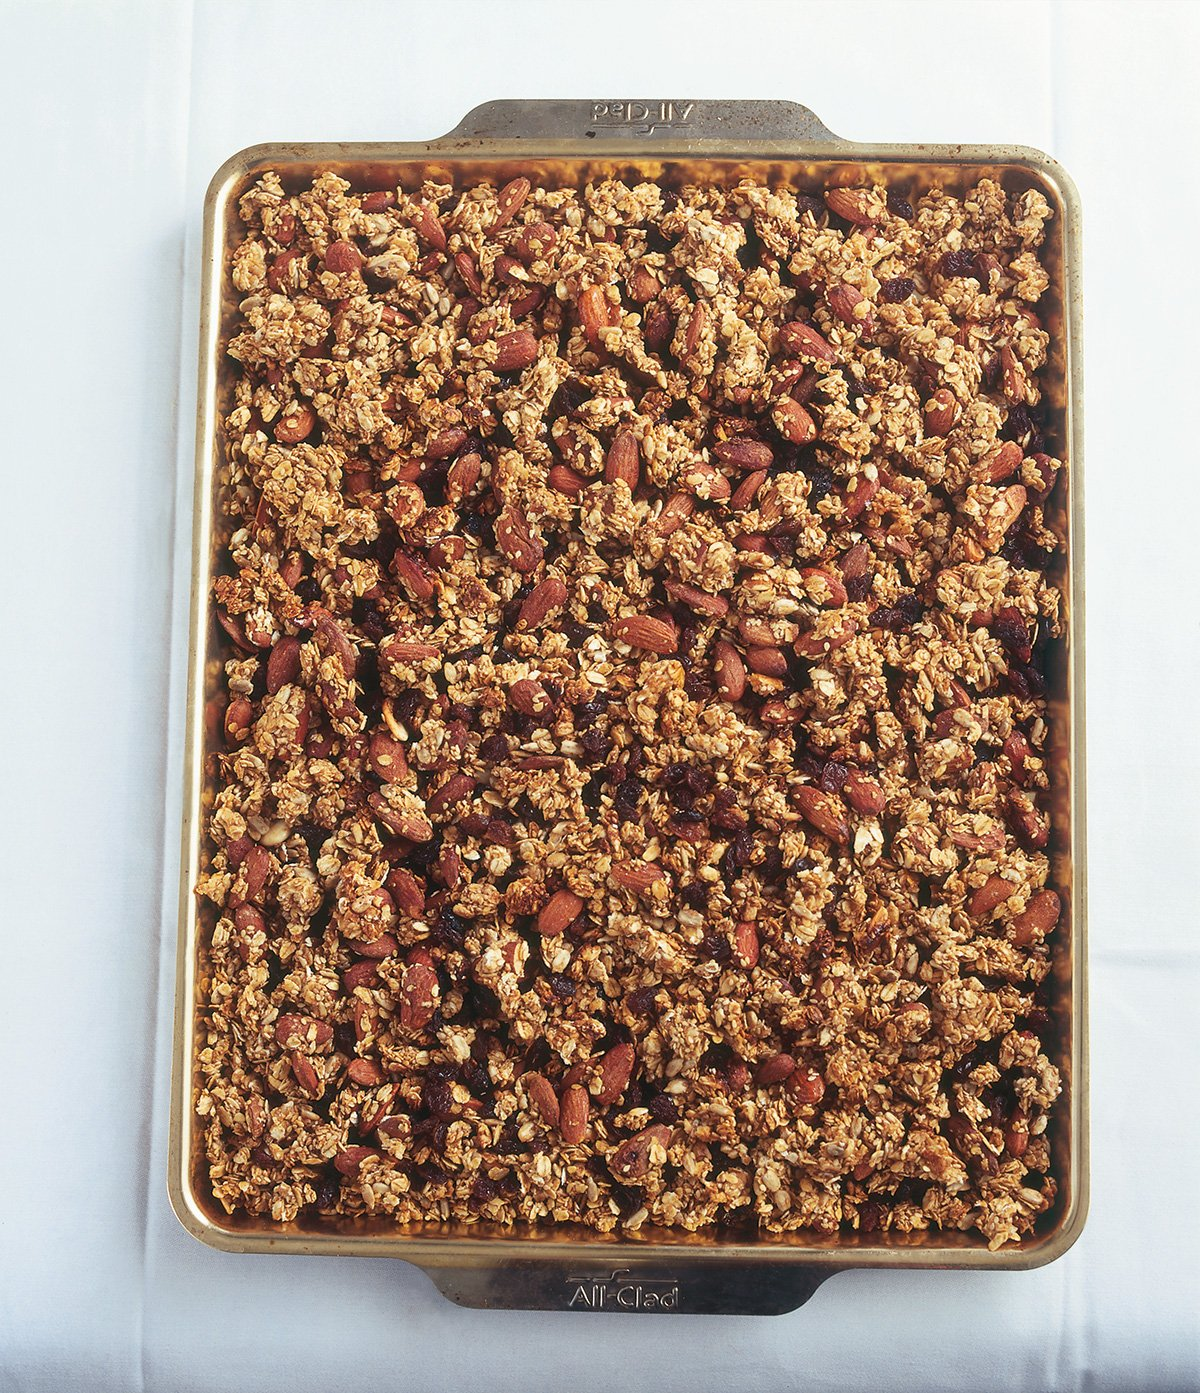 Andy's Fairfield Granola